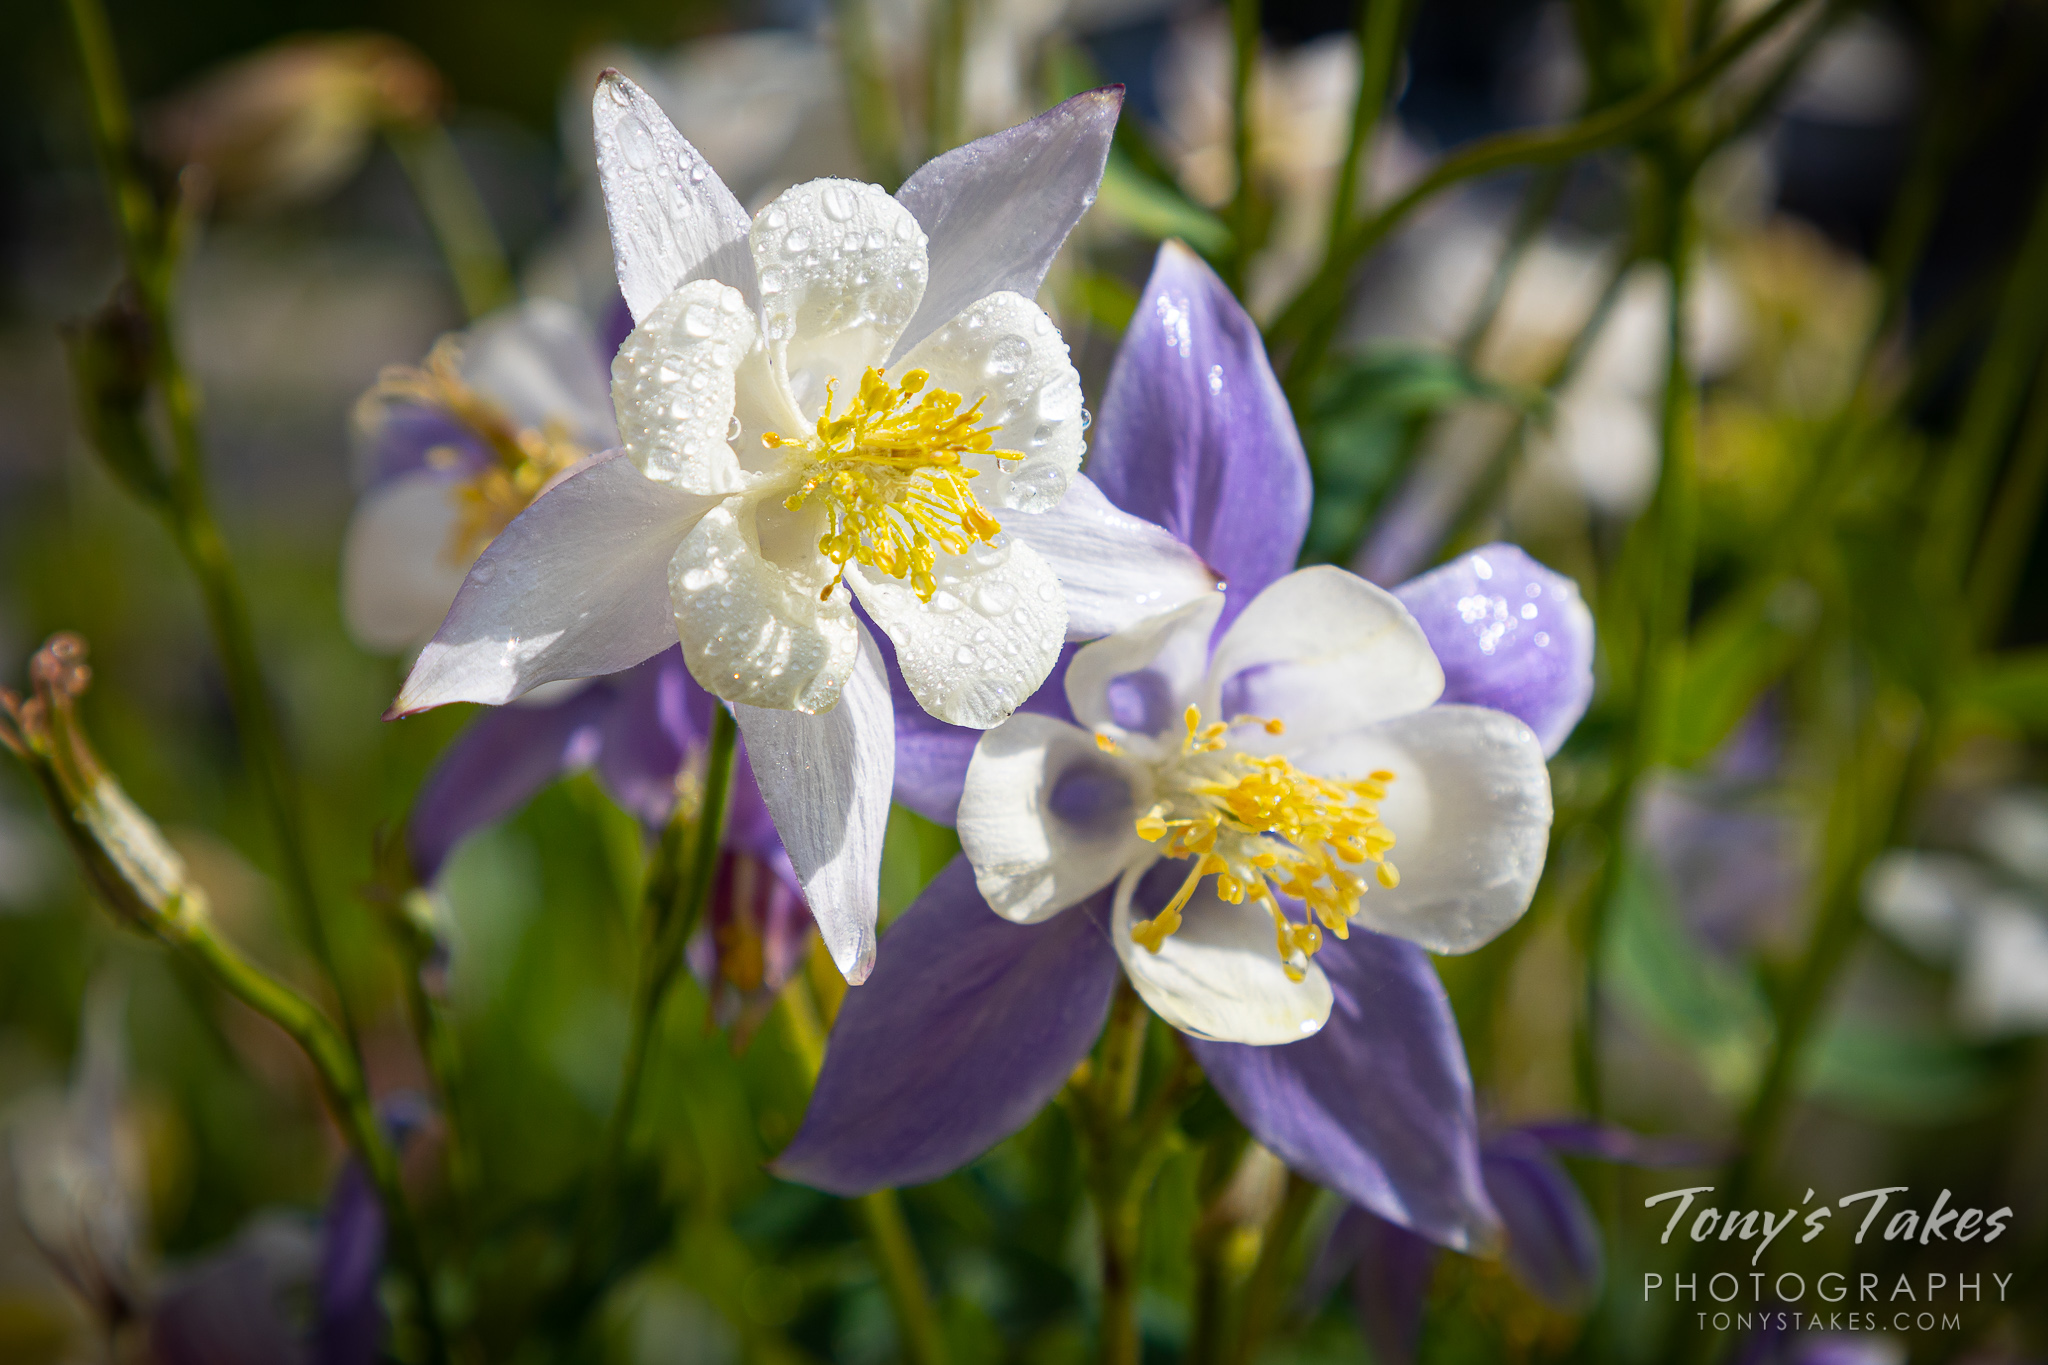 Columbine flowers wet from a passing rain shower soak in the sun in Thornton, Colorado. (© Tony's Takes)